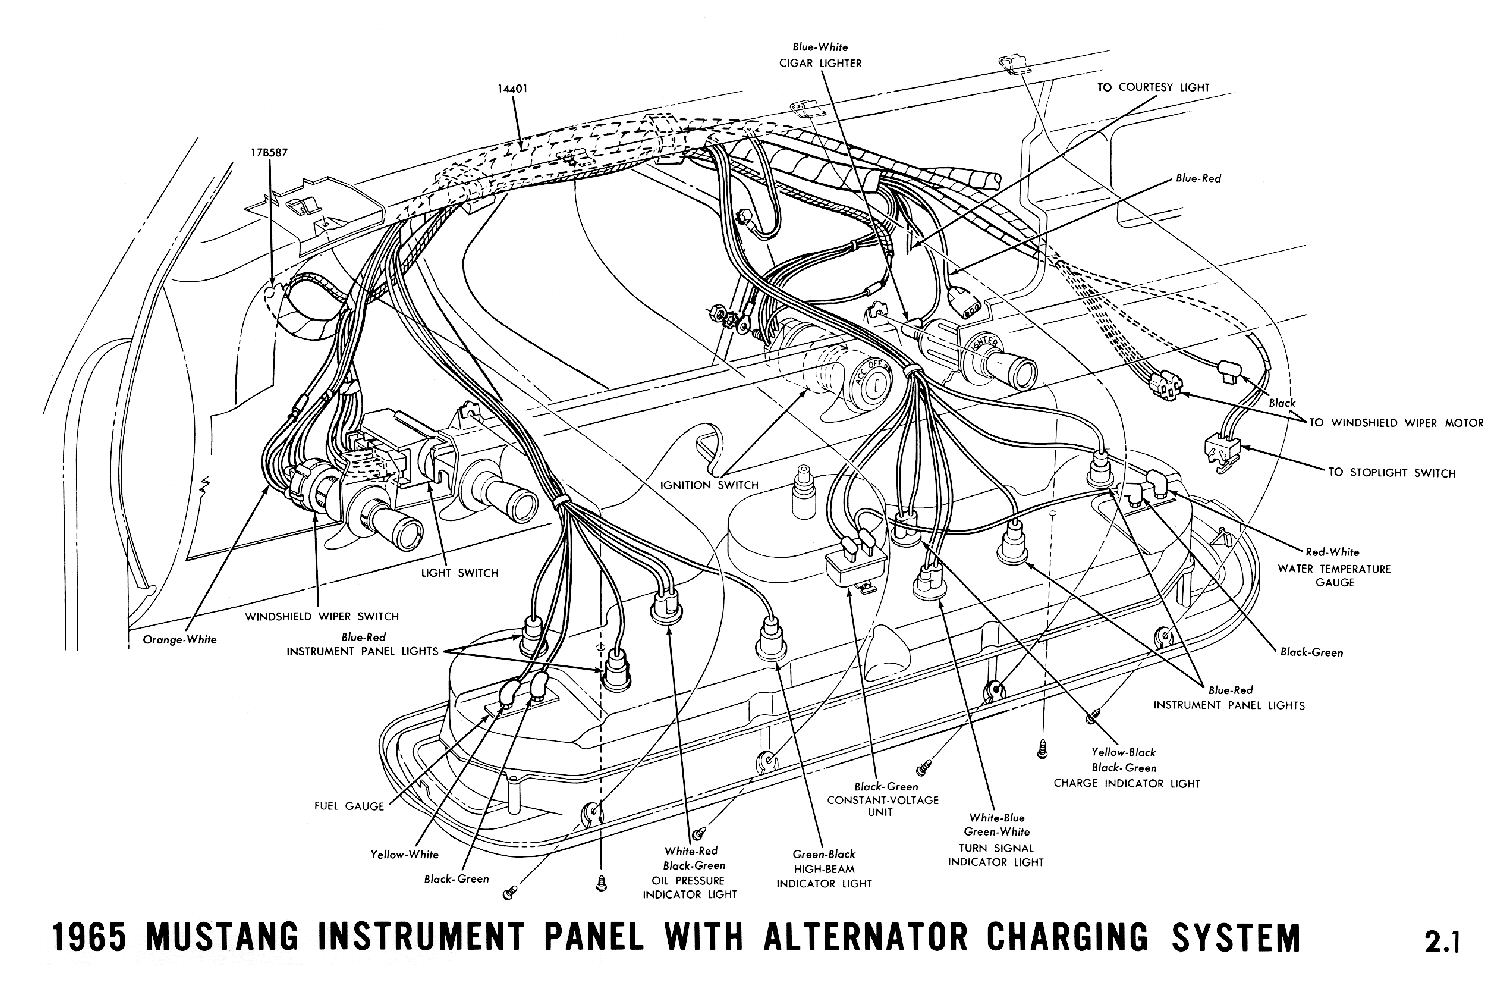 1965a 1965 mustang wiring diagrams average joe restoration 1967 mustang instrument cluster wiring diagram at sewacar.co